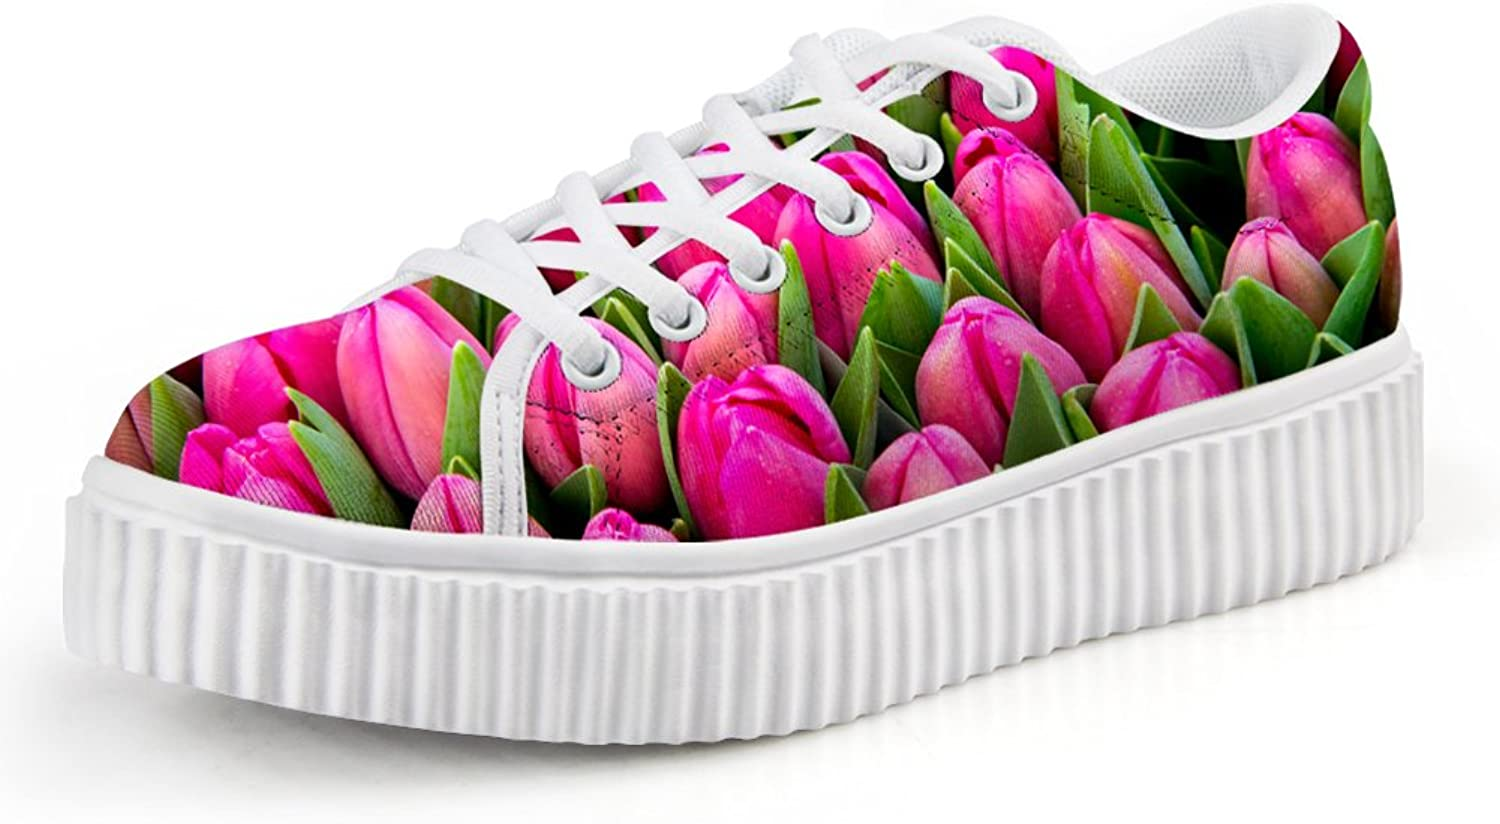 Chaqlin Stylish Tulip Women's Casual Lace-up Low Top Comfort Fashion Sneaker Size 38